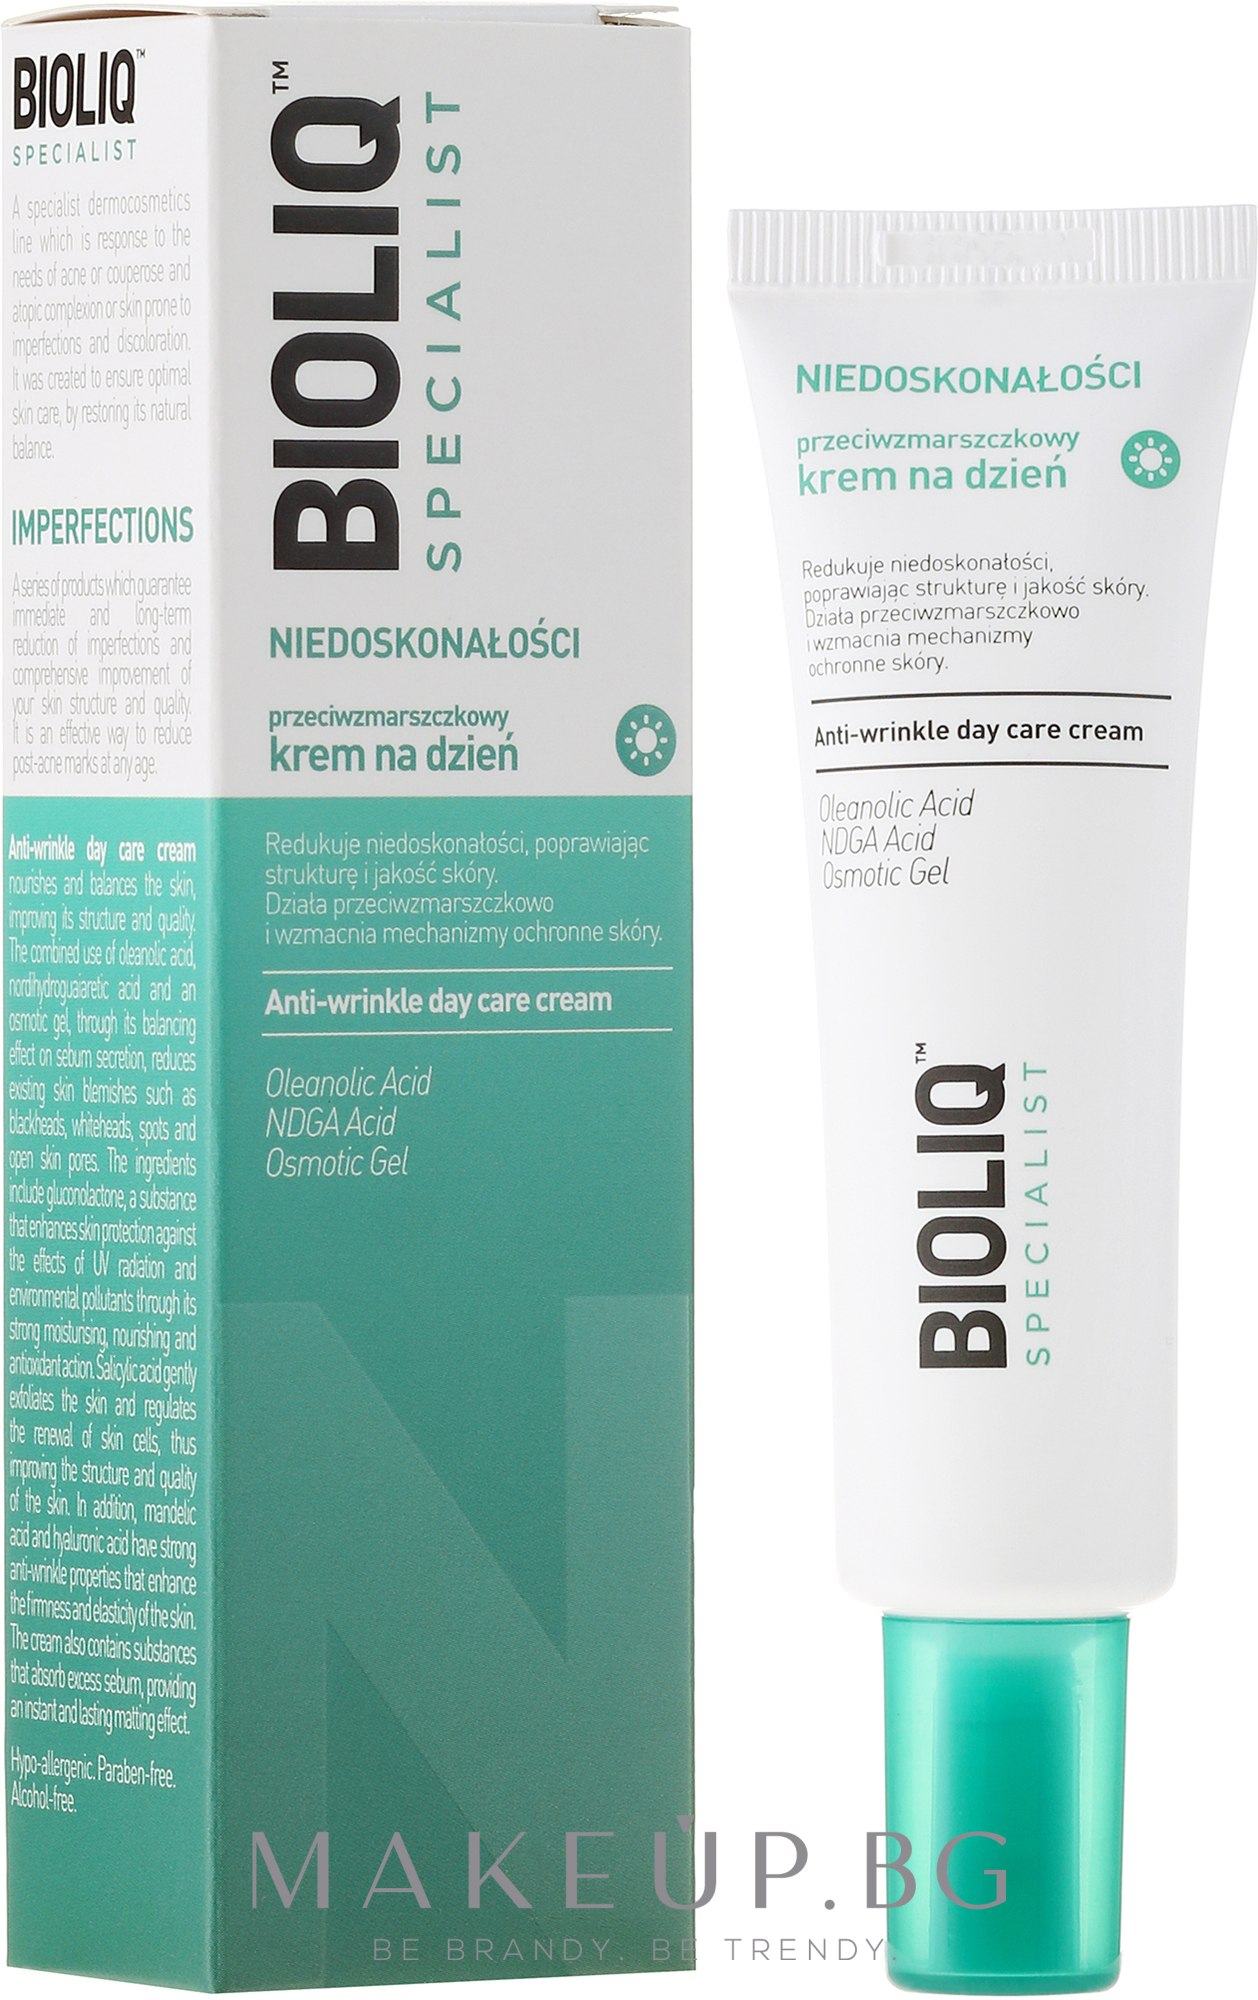 Дневен крем против бръчки - Bioliq Specialist Niedoskonałośc Anti-Wrinkle Day Care Cream — снимка 30 ml